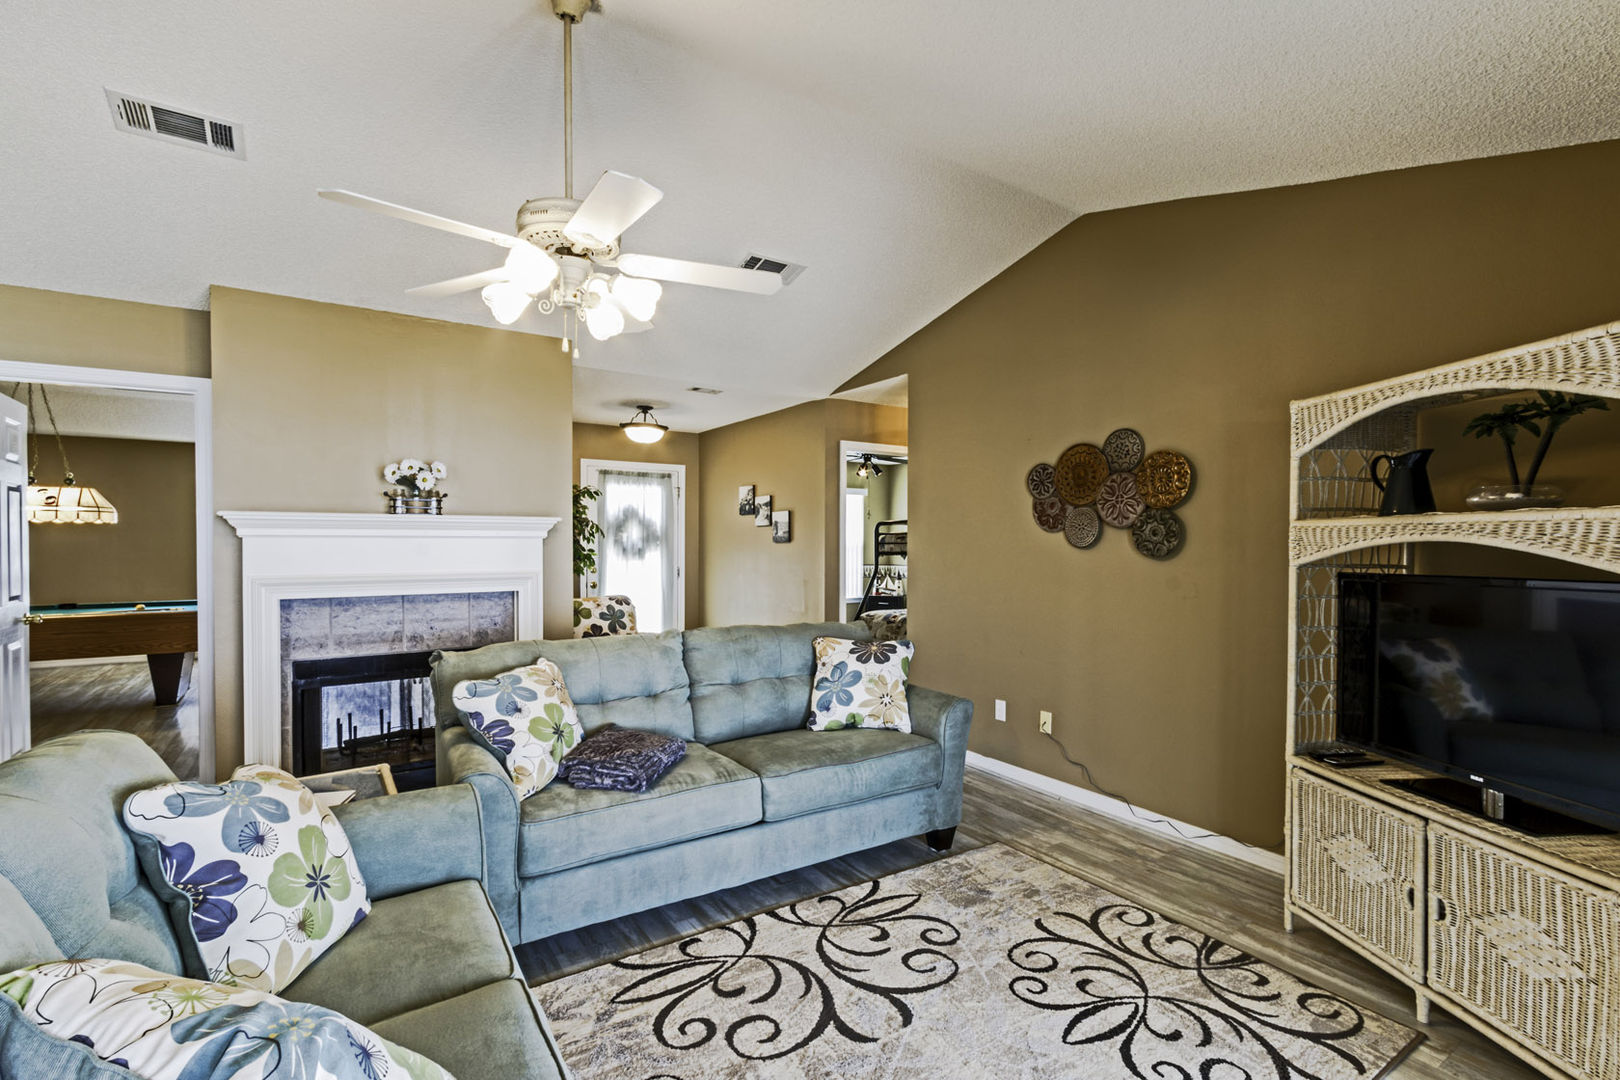 Relaxing and comfy living area with couch and large TV.